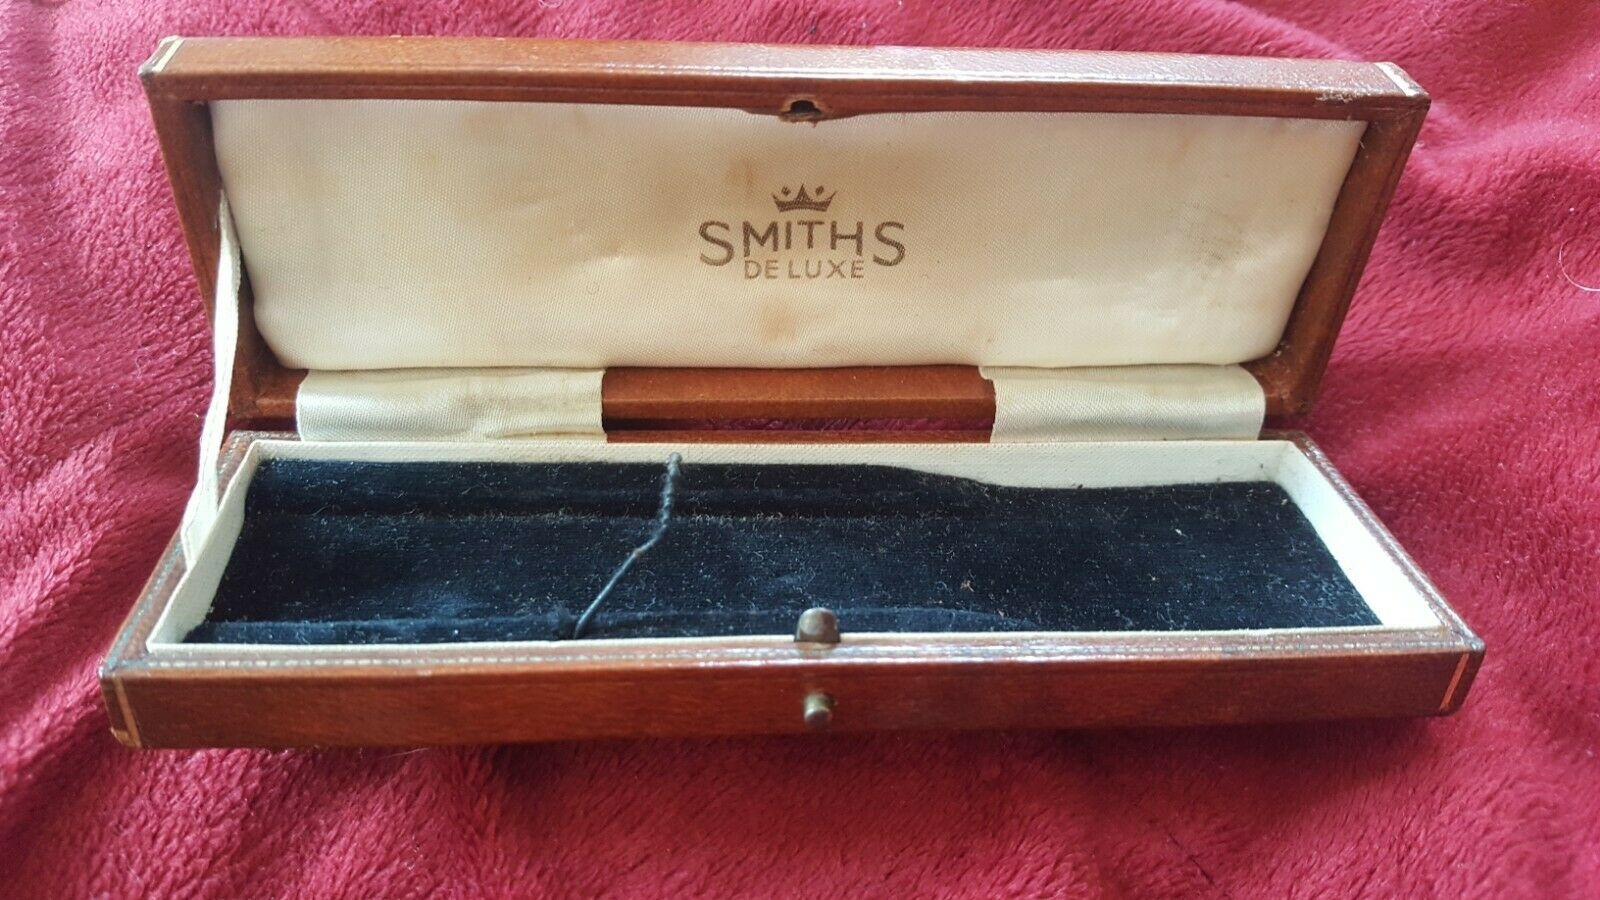 Ultra Rare Smiths Watch Presentation case for 1950s or later watch.